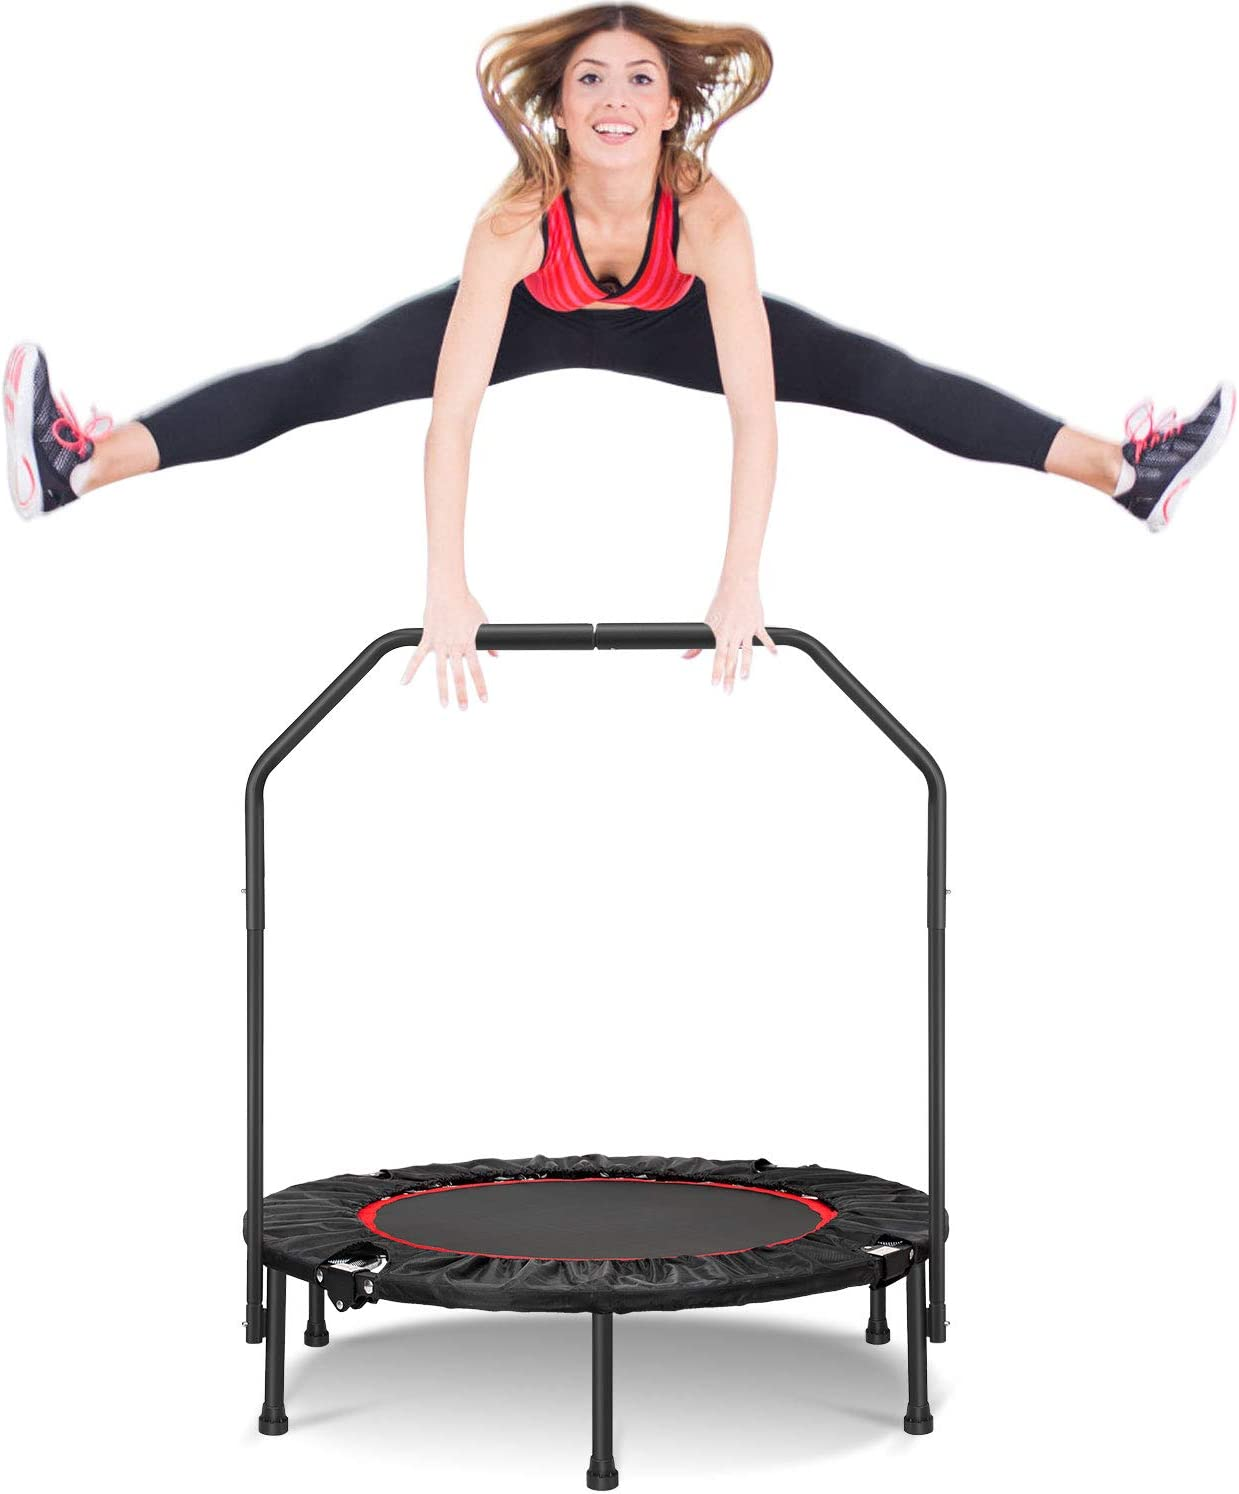 Fitness Rebounder Trampoline for Kids Adults Indoor Outdoor Jumping Exercise Workout Stable Quiet Wolfyok 38 Inch Foldable Mini Trampoline with Adjustable Handle and Safety Pad Max 250 Lbs Black